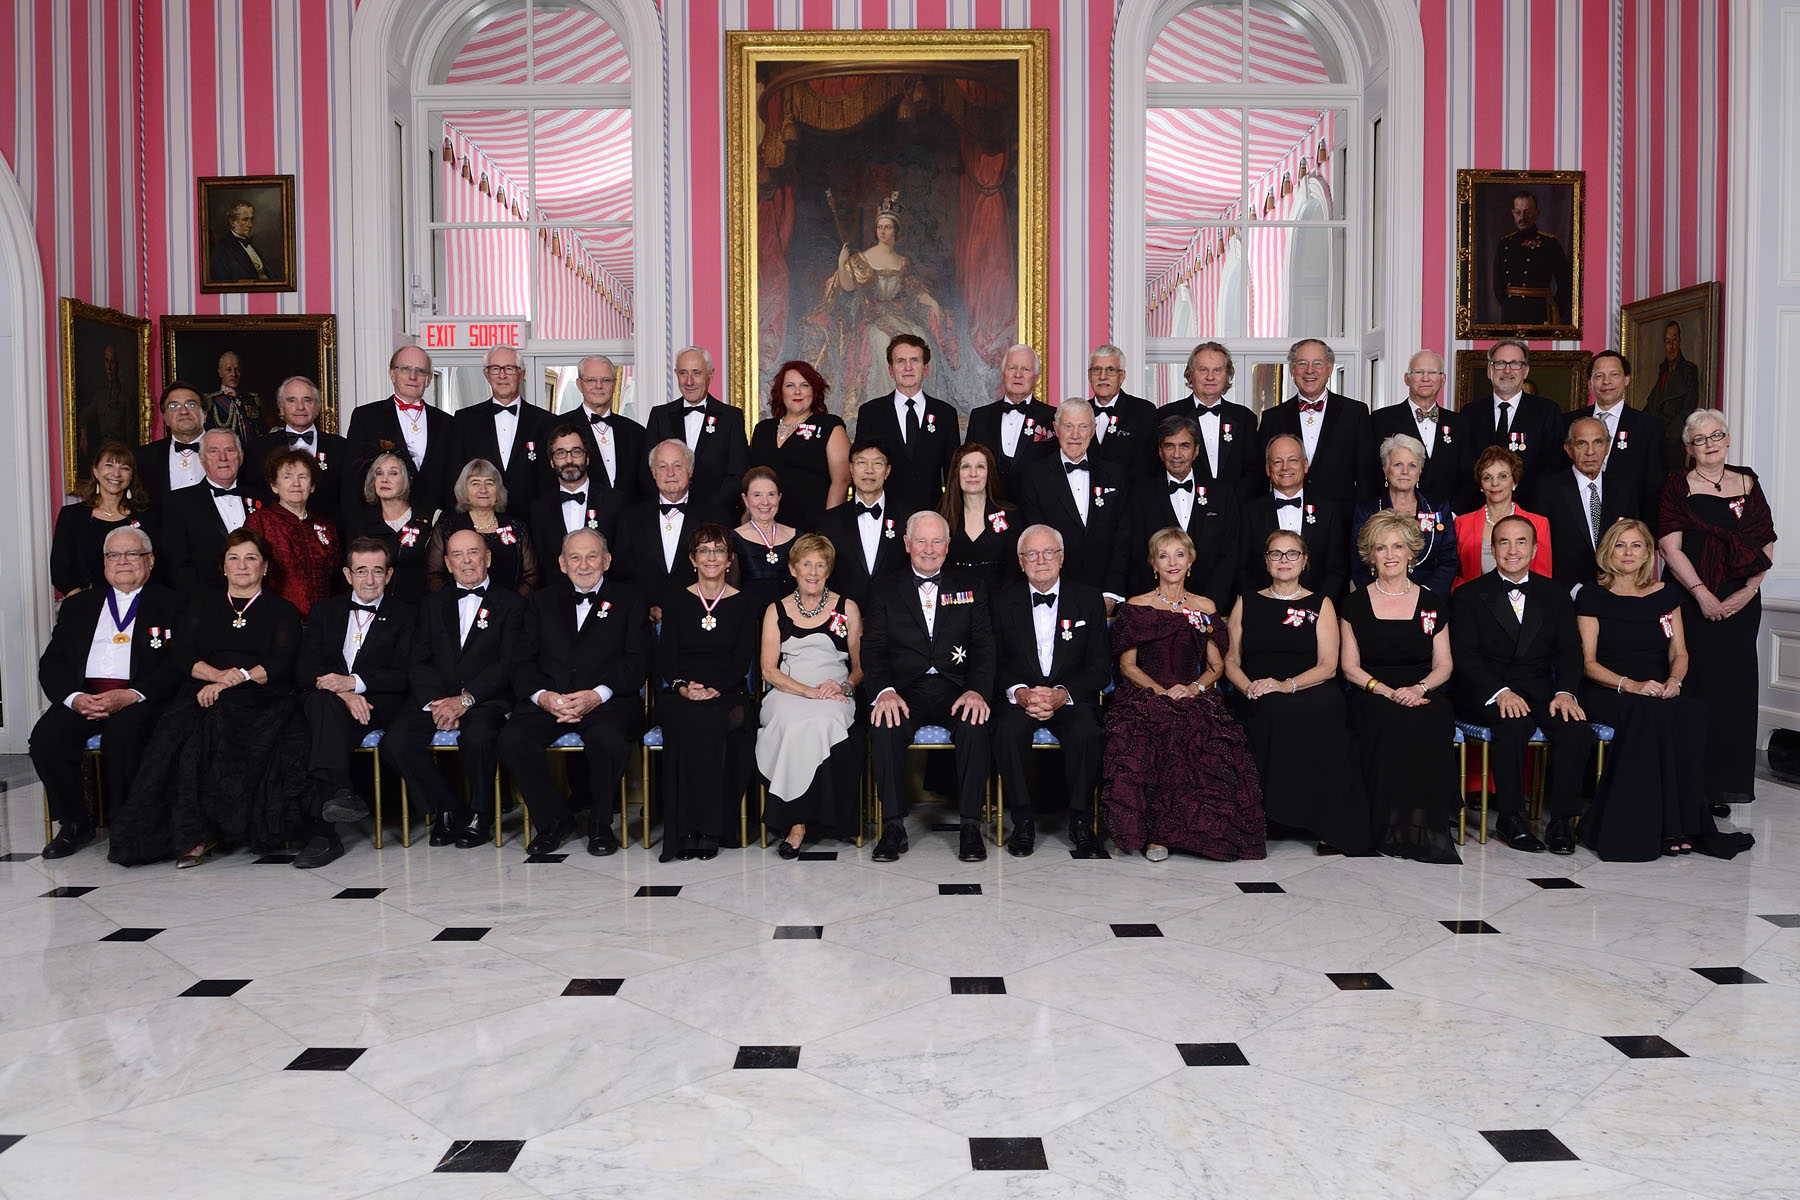 Group photo taken prior to the formal dinner held in honour of the newly invested recipients of the Order of Canada.